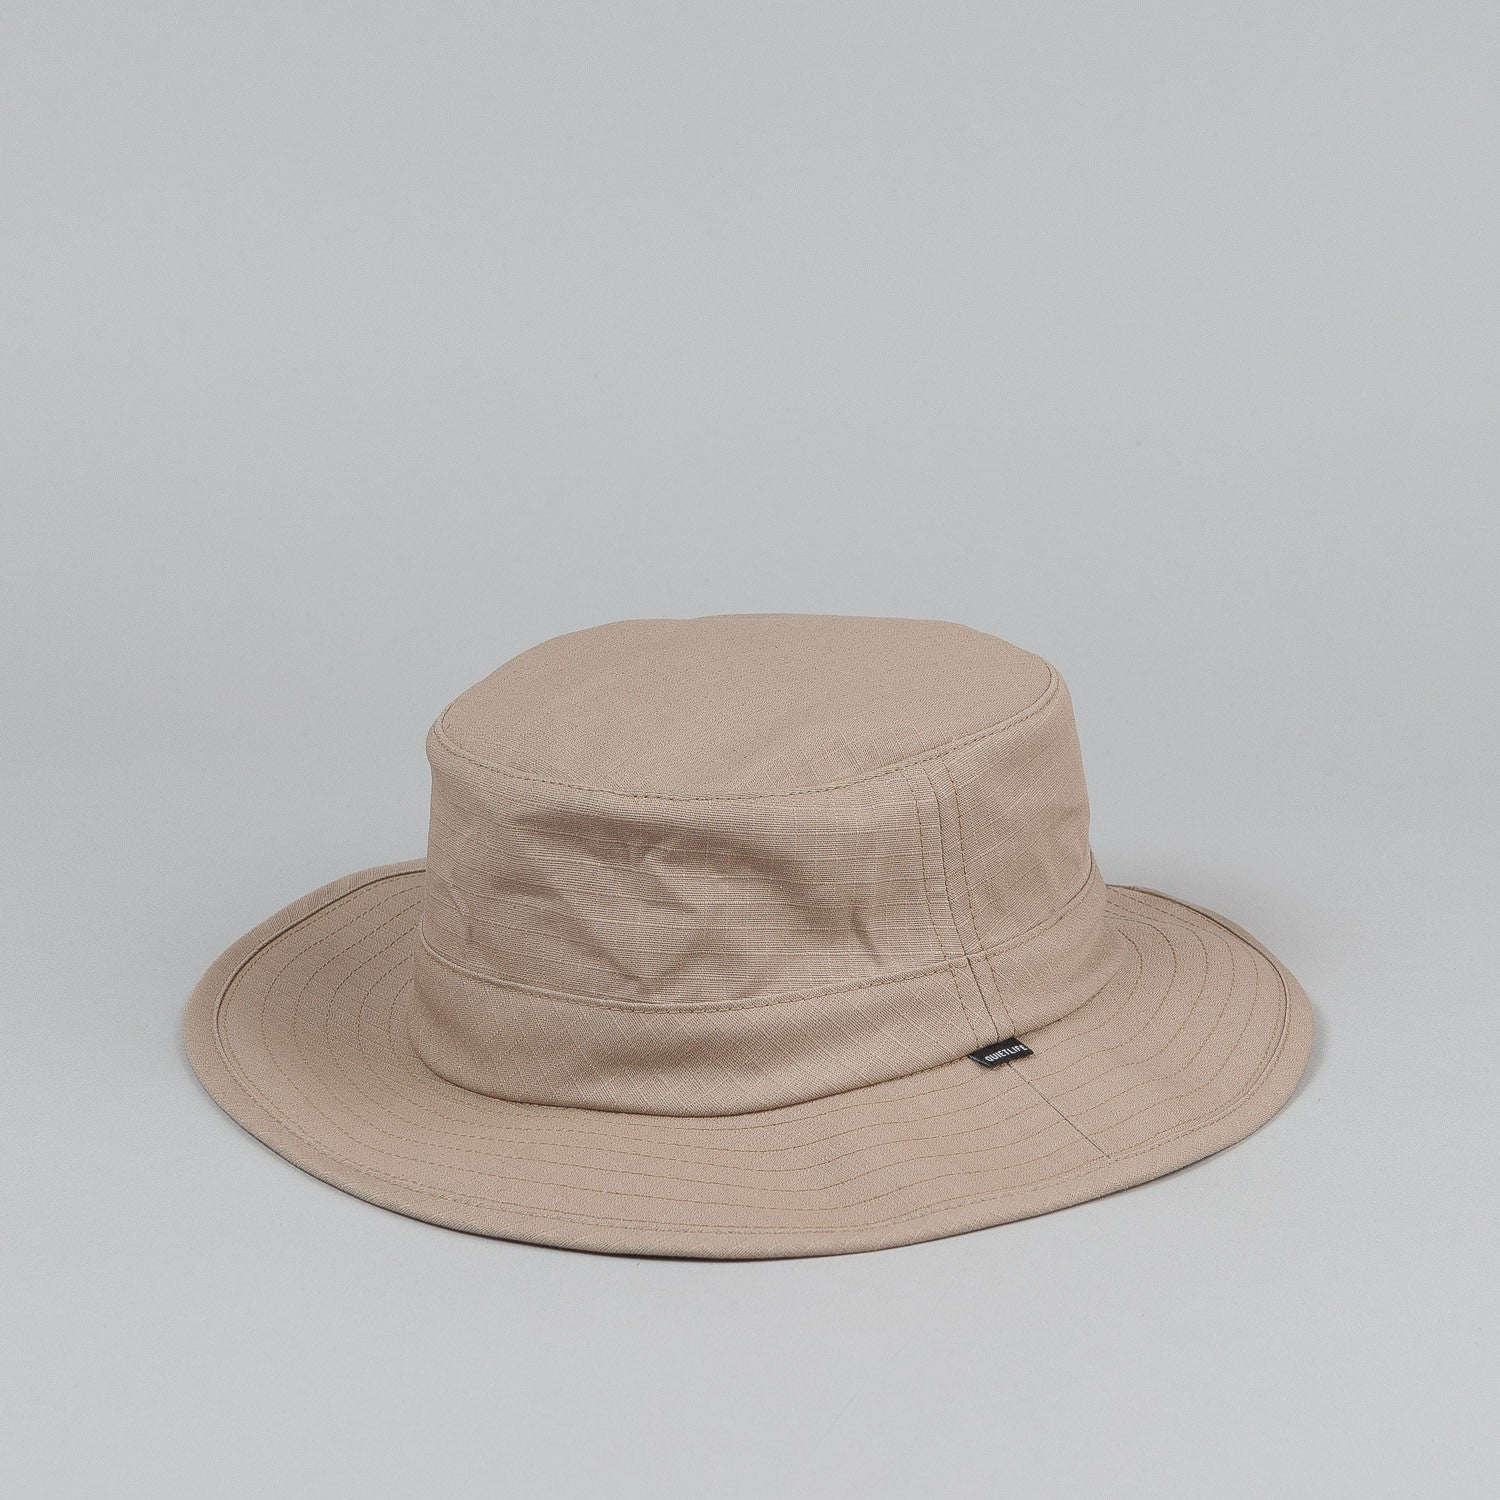 The Quiet Life Swamp Sun Hat - Tan